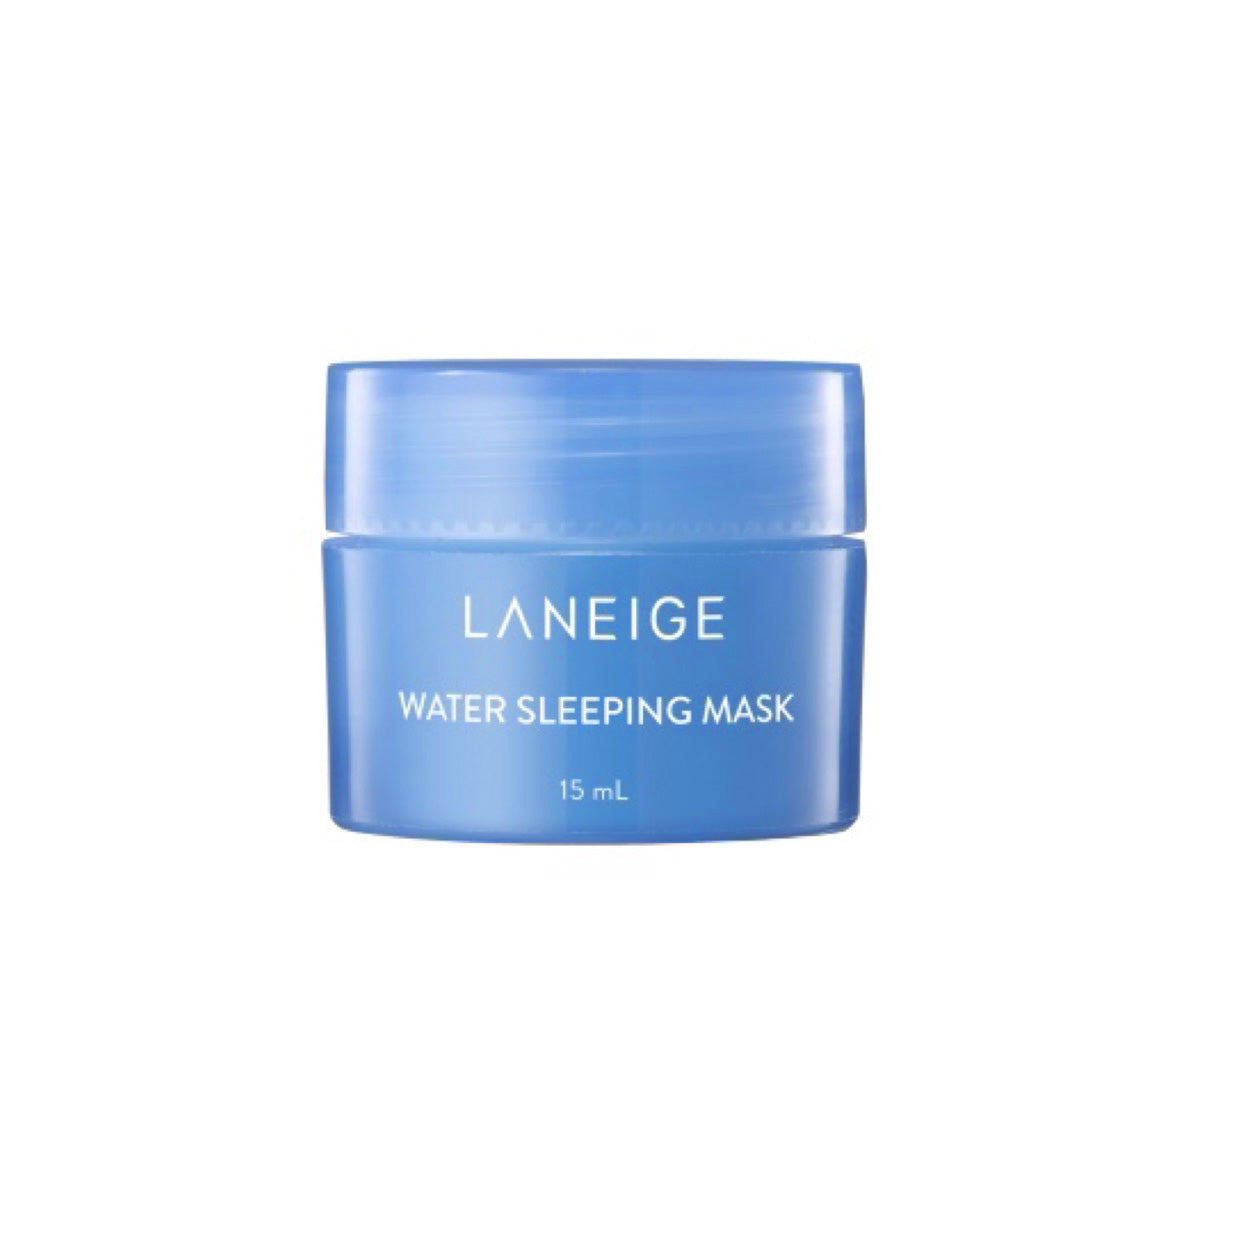 Water Sleeping Mask (15ml)